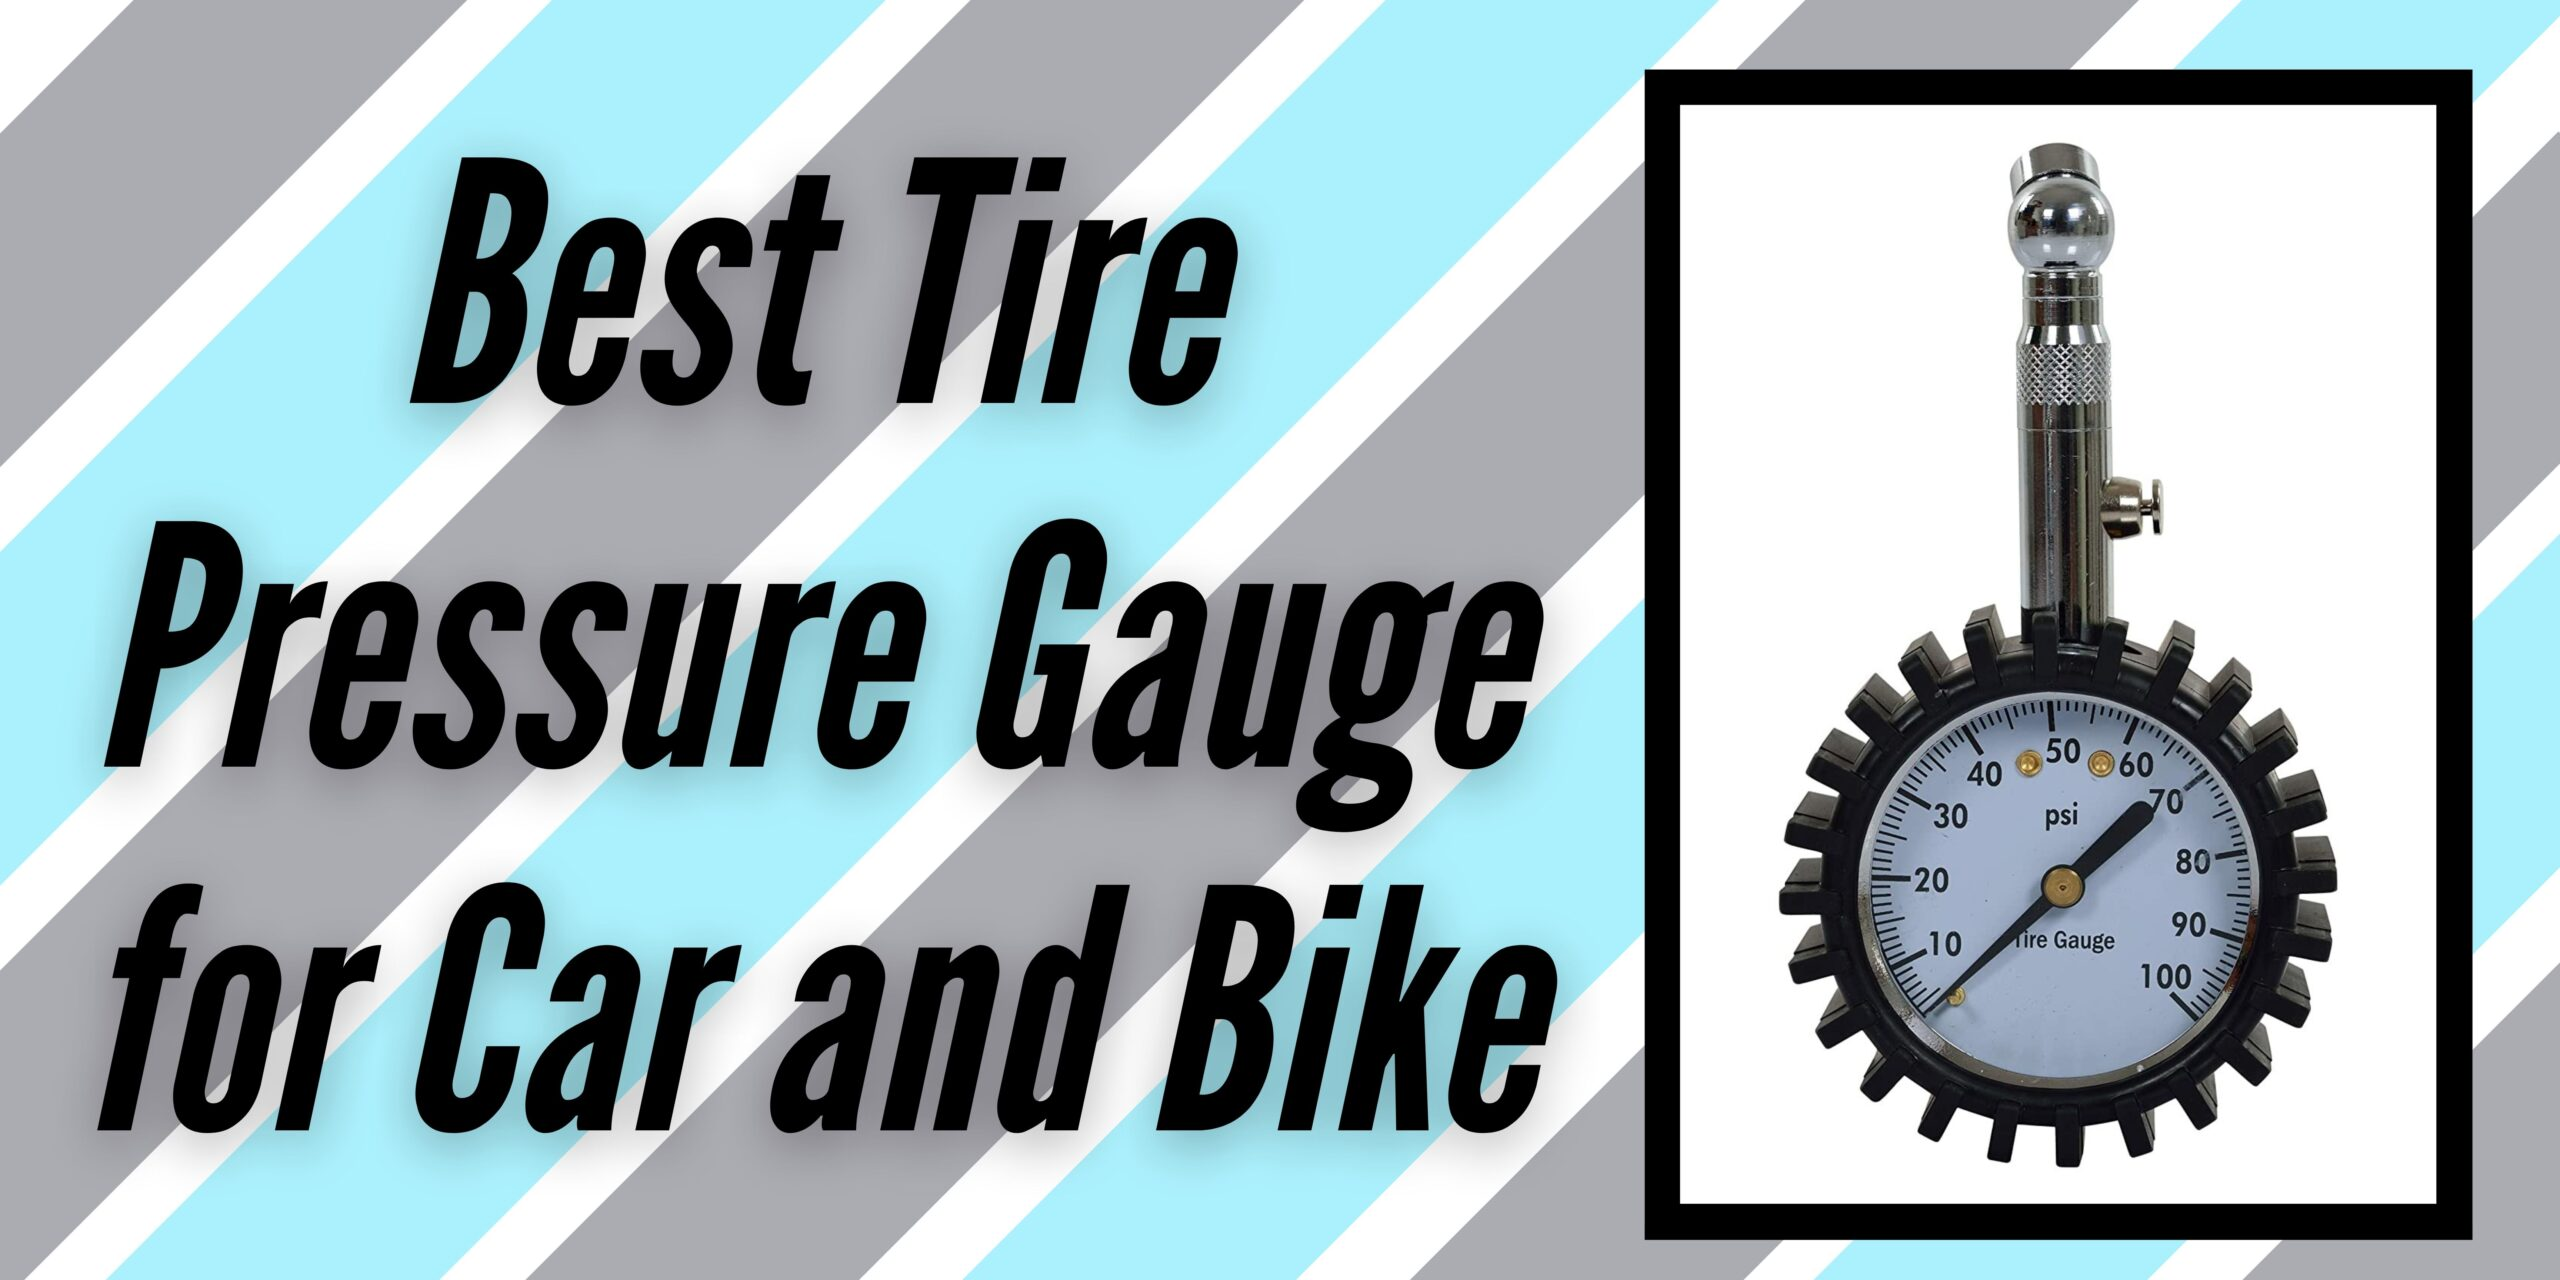 Best Tire Pressure Gauge for Car and Bike